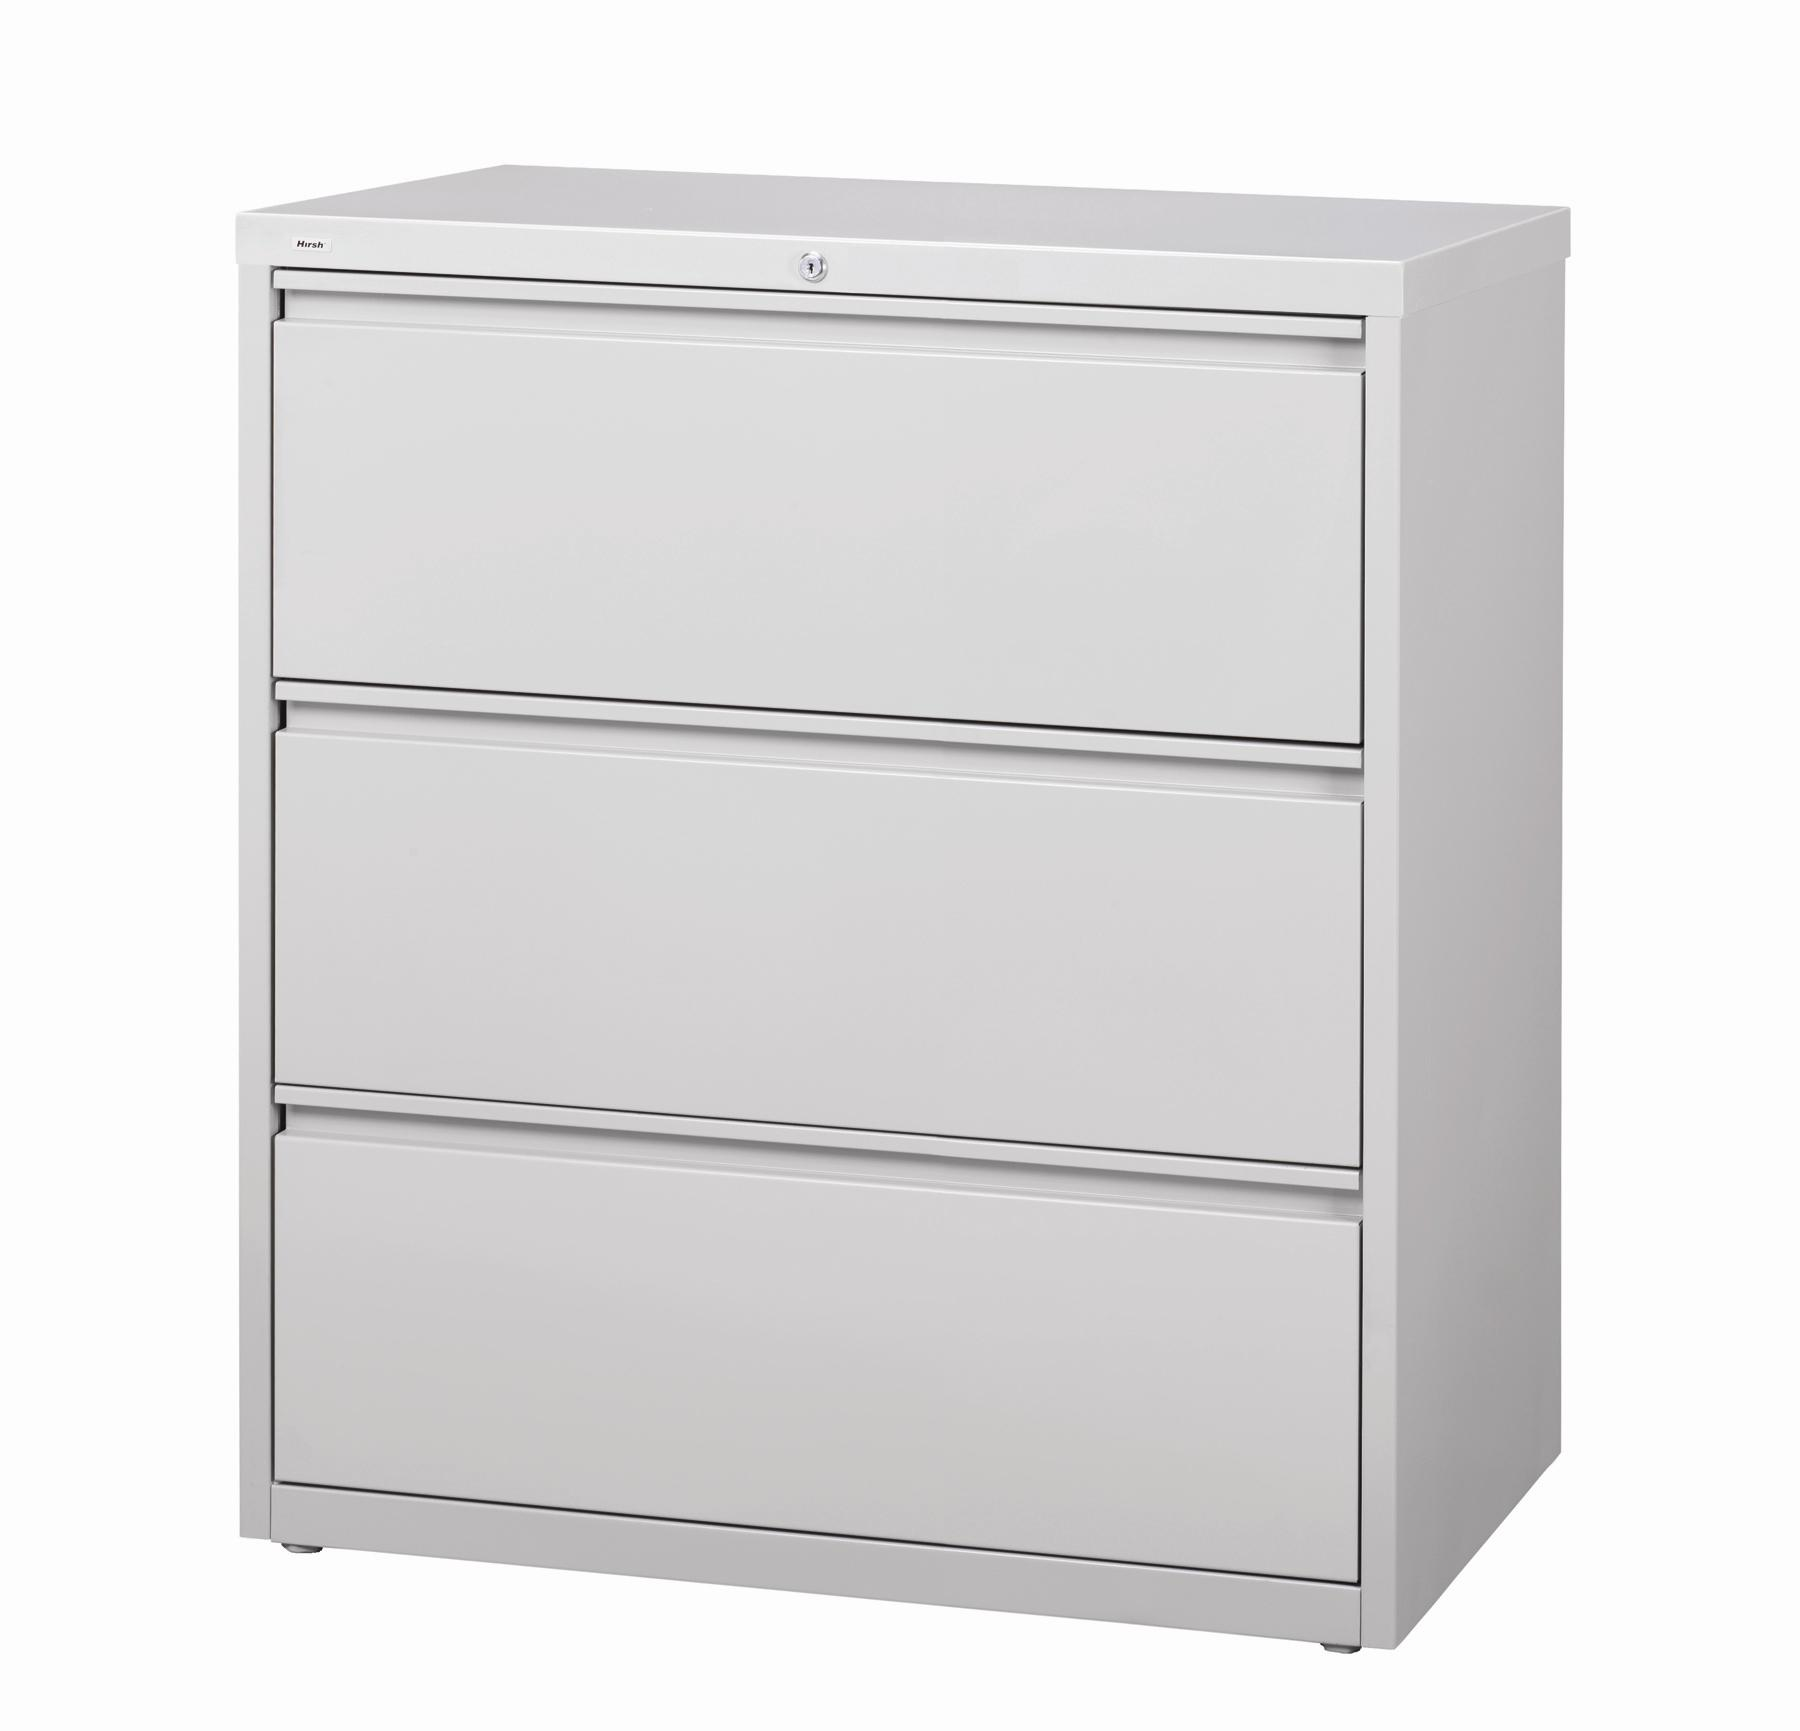 Merveilleux Hirsh HL10000 Series 30 Inch Wide 3 Drawer Commercial Lateral File Cabinet